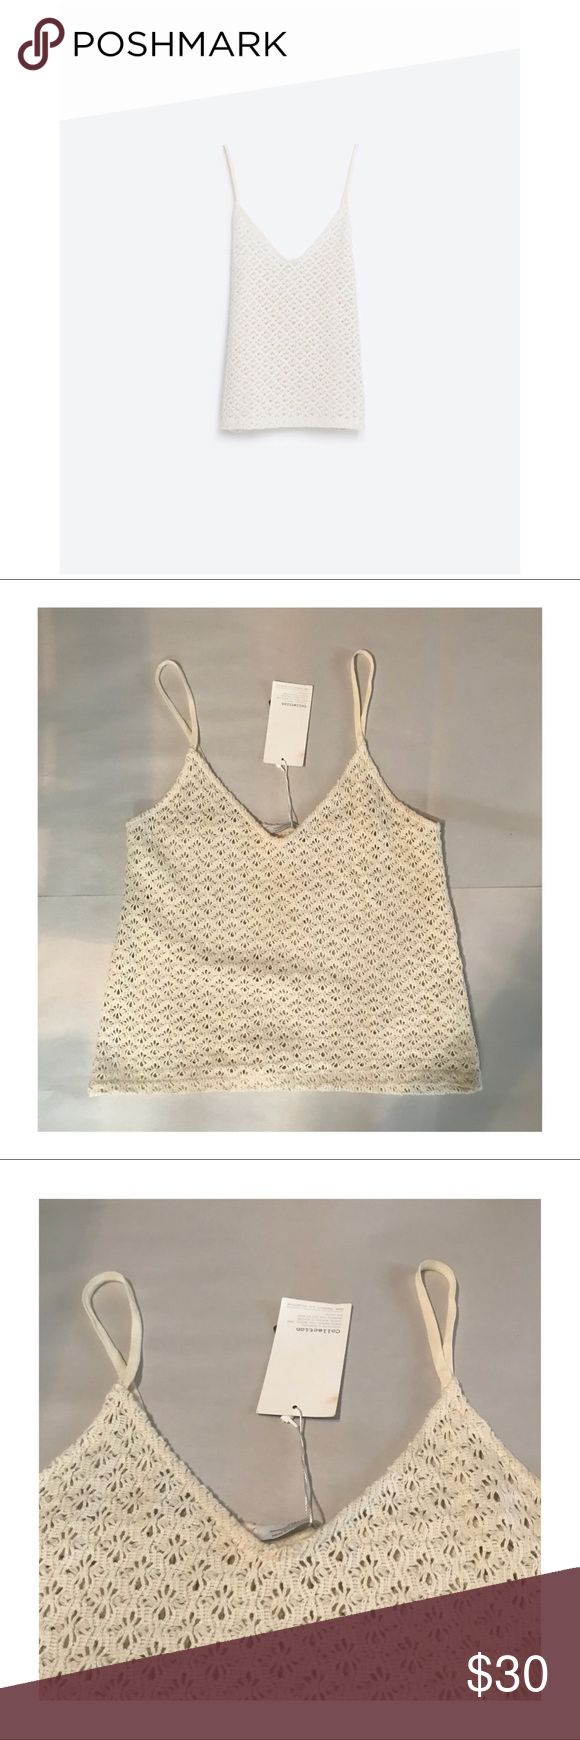 NWT ZARA S/S CROCHET STRAPPY TANK TOP T-SHIRT SZ M This is a brand new Zara top from the Spring/Summer  Trafaluc Collection.   Details include, a crochet look, v neck front; spaghetti straps, a thick stretchy fabric.   Offers welcome!  #zara #zaratrf #zaratrafaluc #trf #trafaluc #crochet #crochettop #zaracrochet #zaracrochettop #tanktop #spaghettistrap #spring #summer #cream #ivory Zara Tops Tank Tops